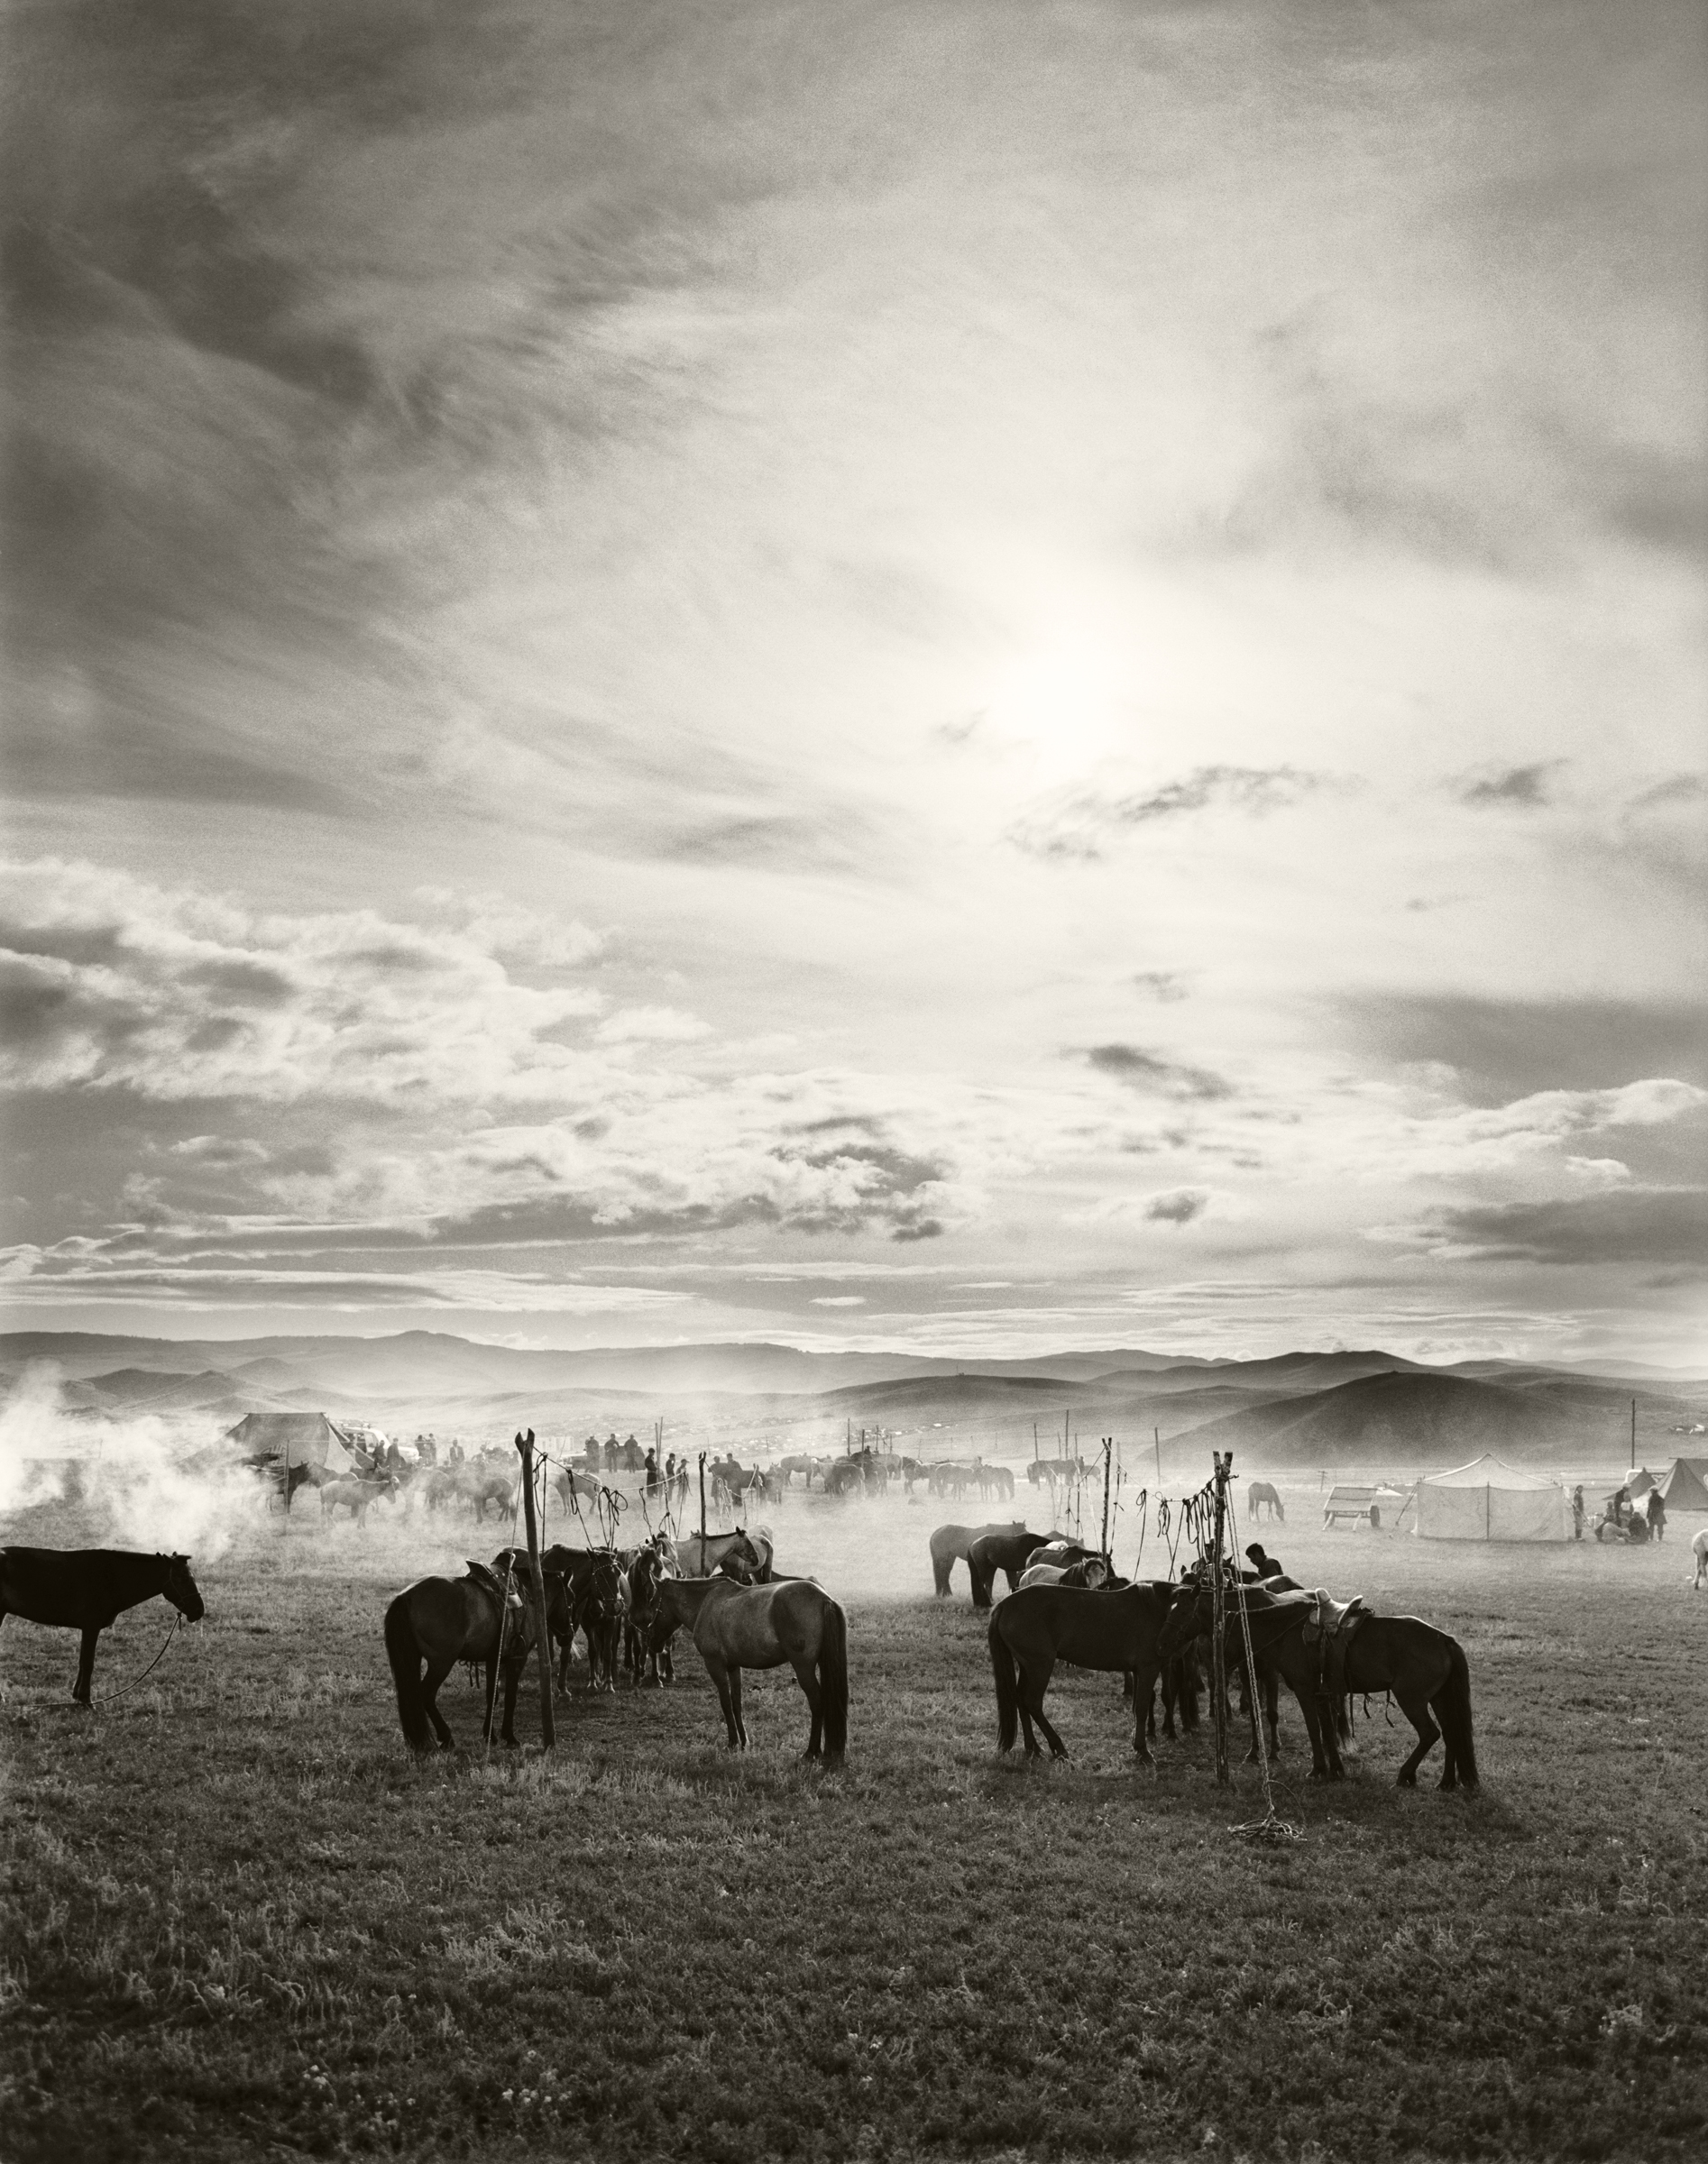 LANDSCAPE IN MONGOLIA WITH HORSES